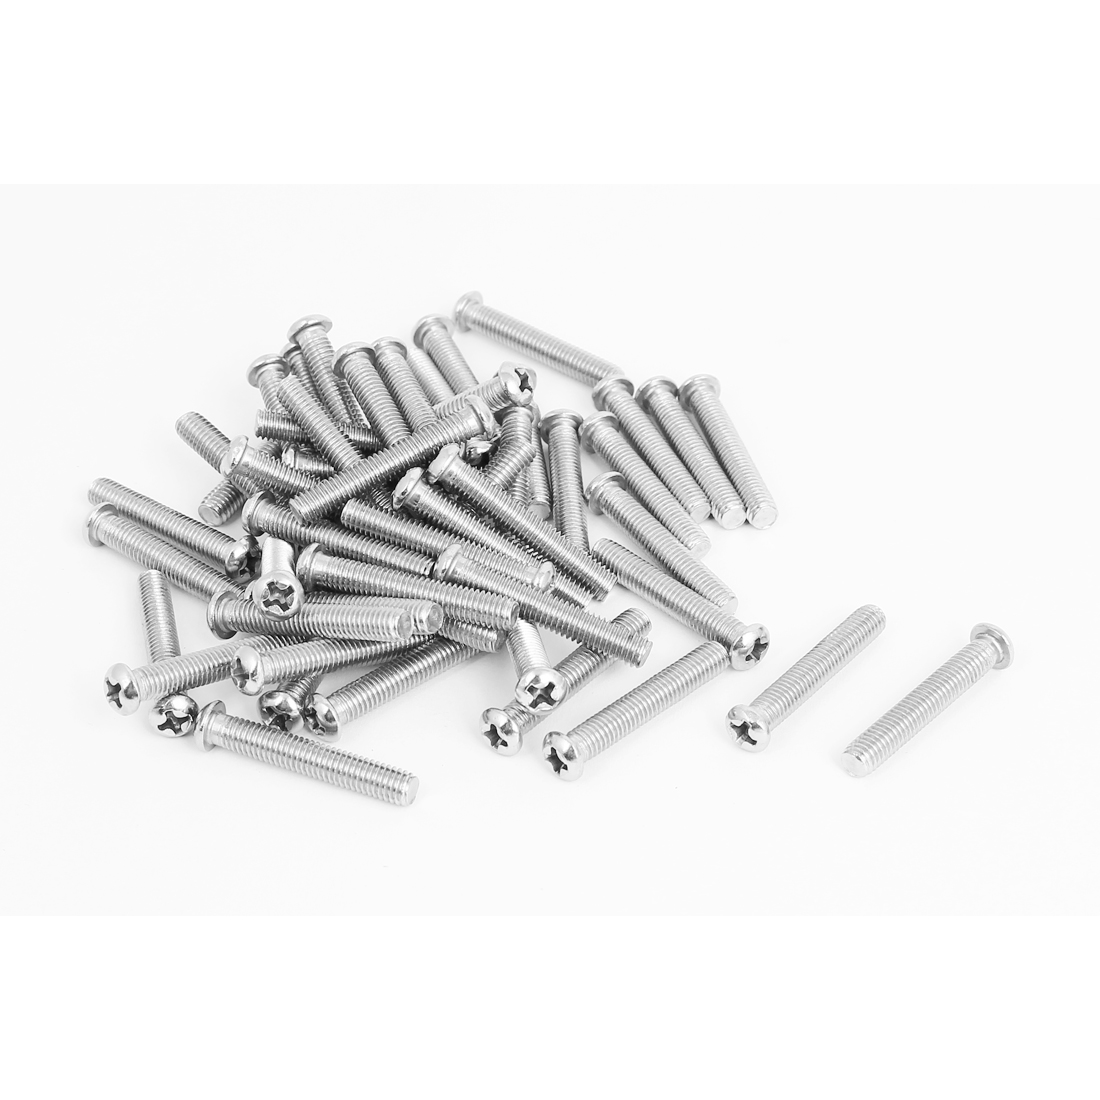 M5x30mm Stainless Steel Phillips Round Pan Head Machine Screws 50pcs